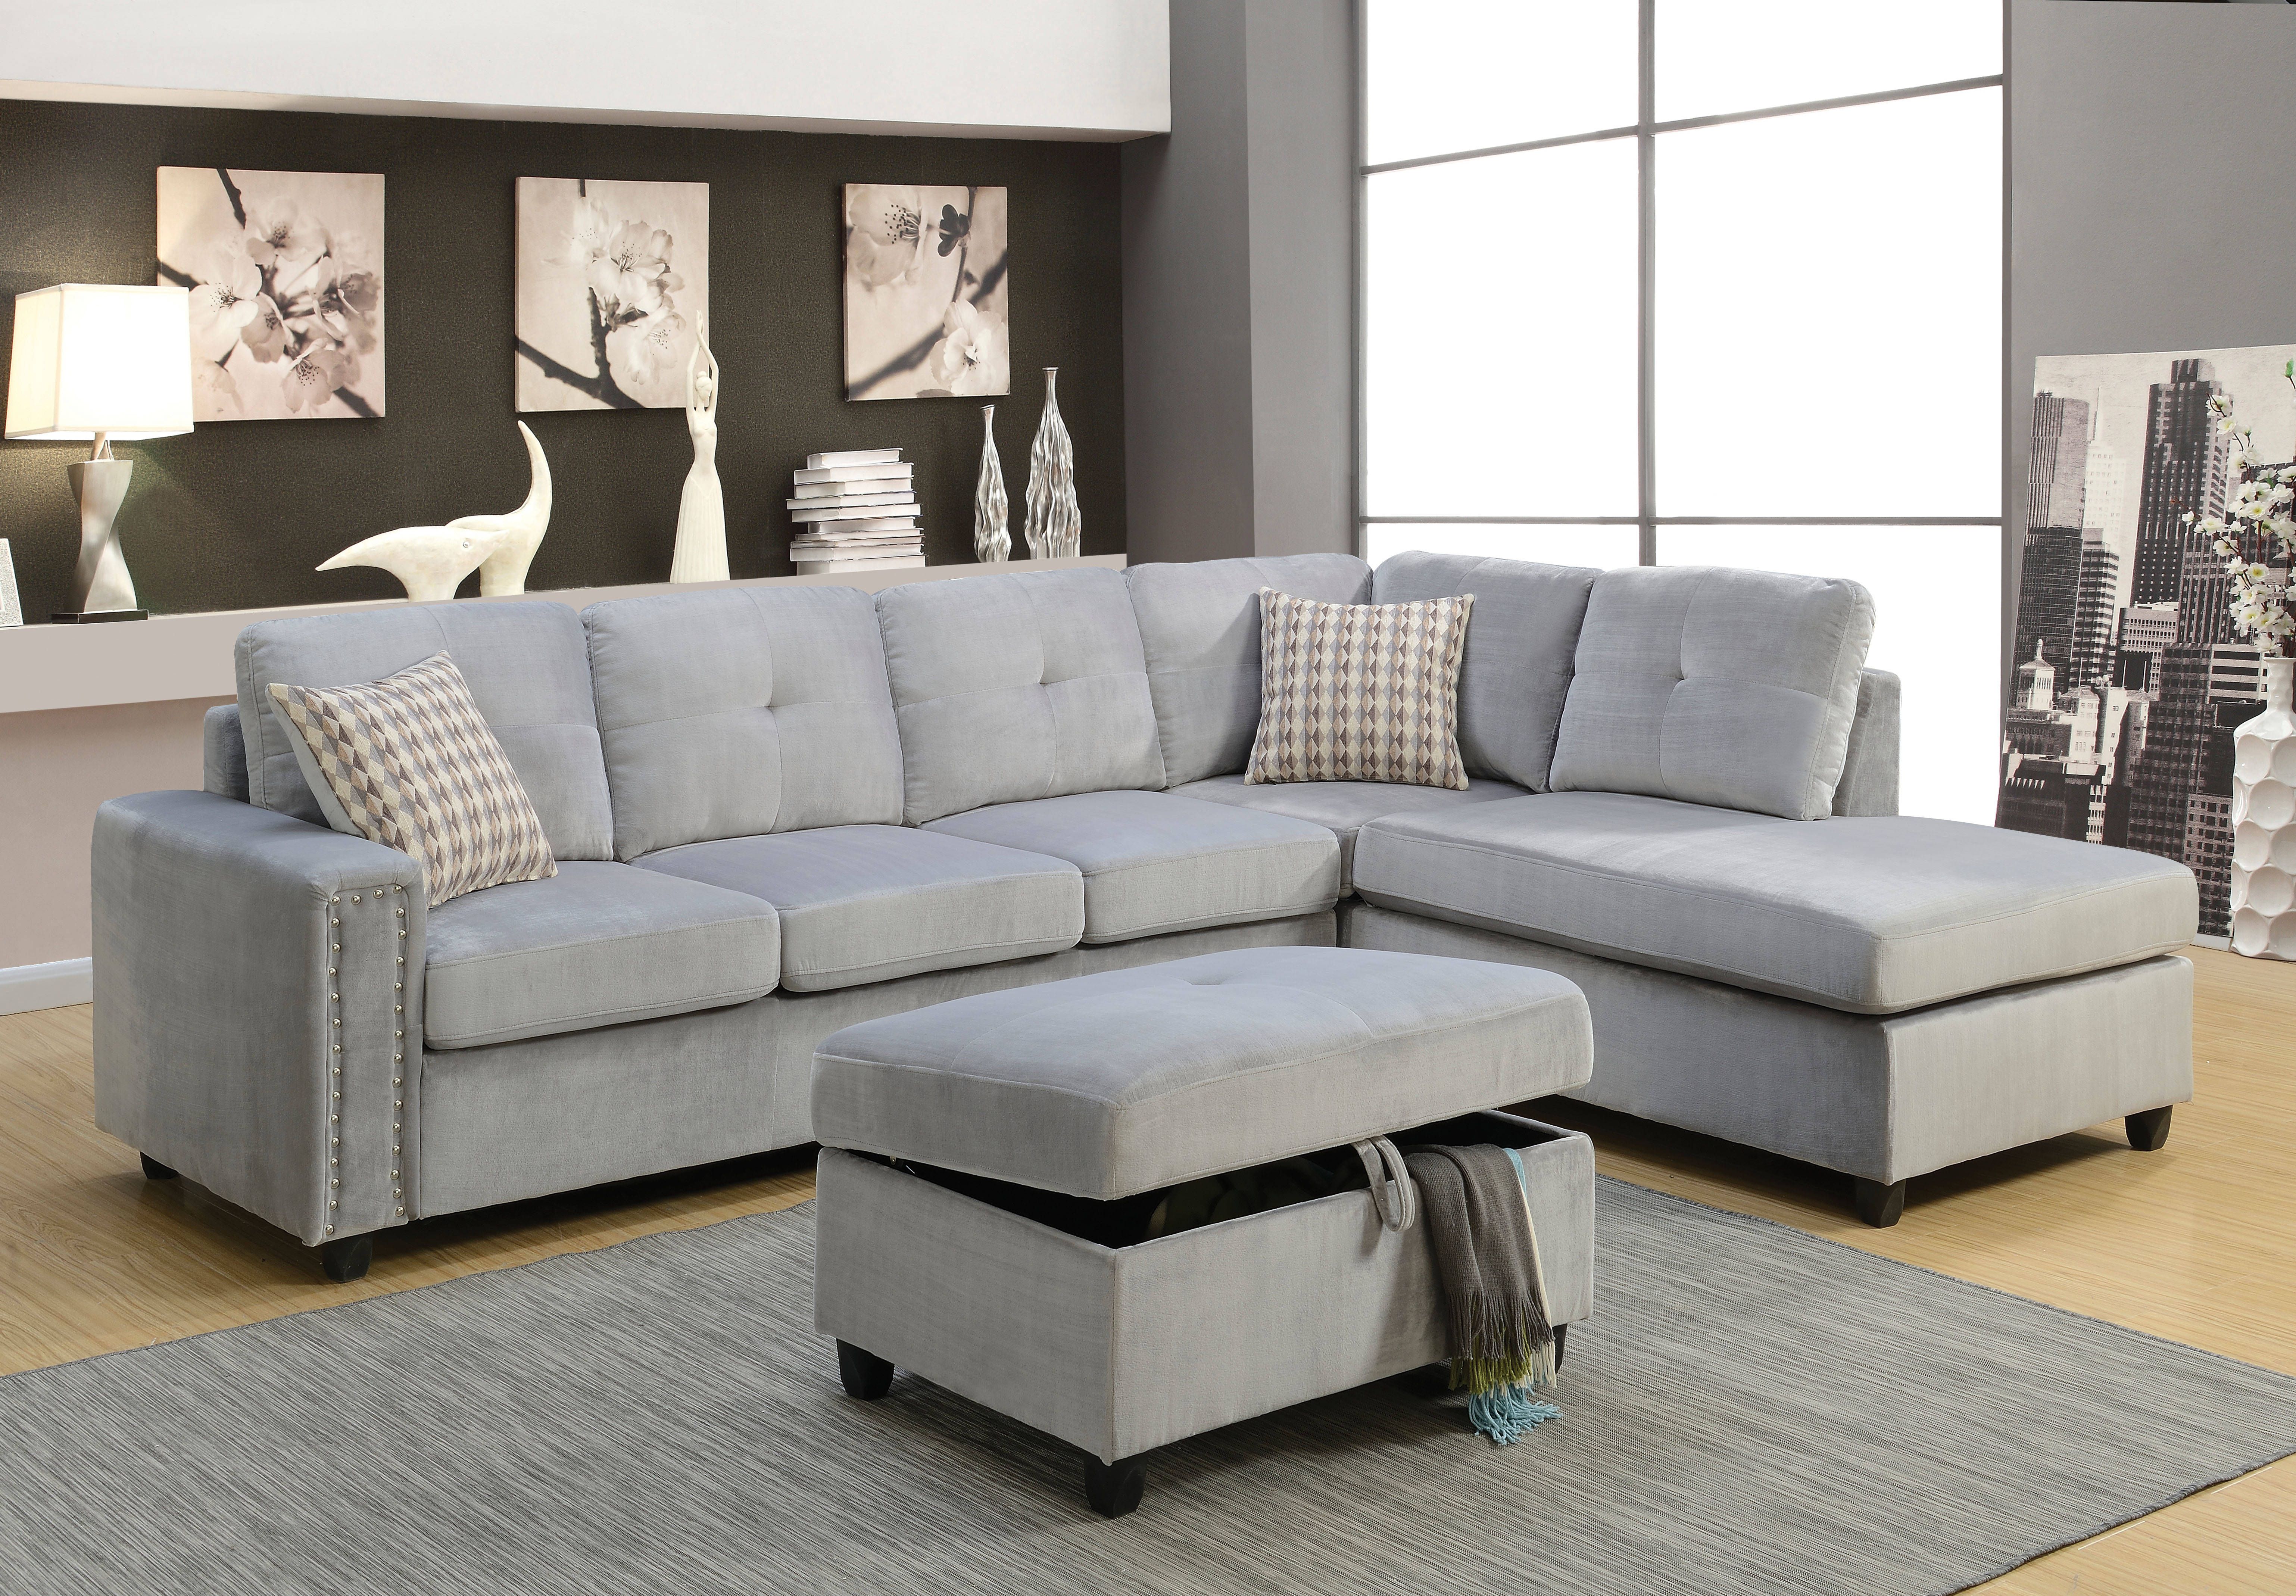 Acme furniture belville gray reversible sectional sofa for Mason grey sectional sofa